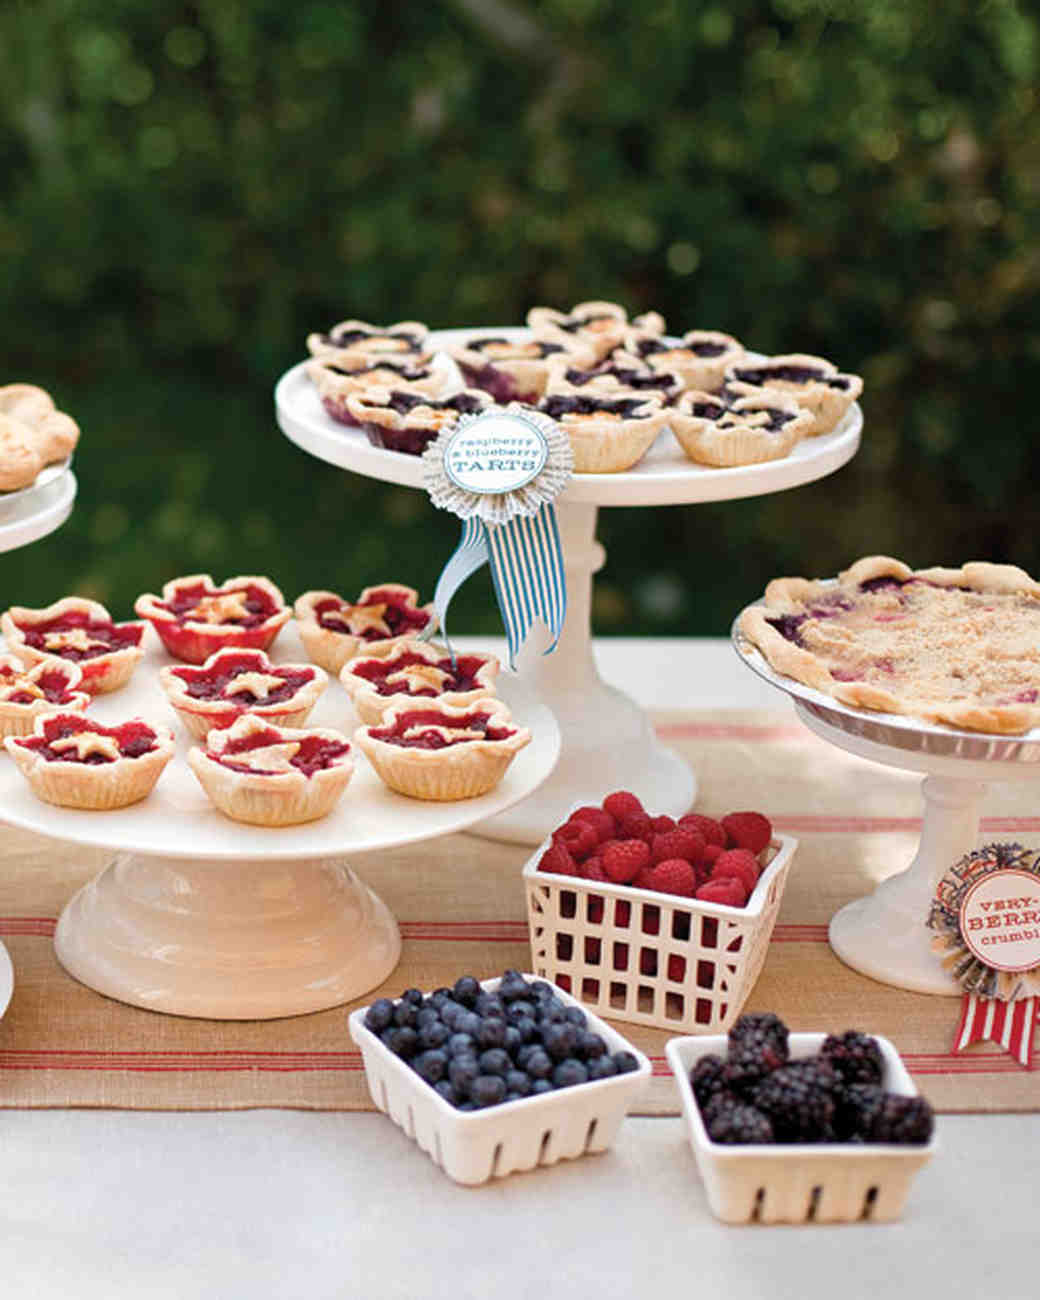 Small Desserts For Weddings: Dessert Table Ideas From Real Weddings